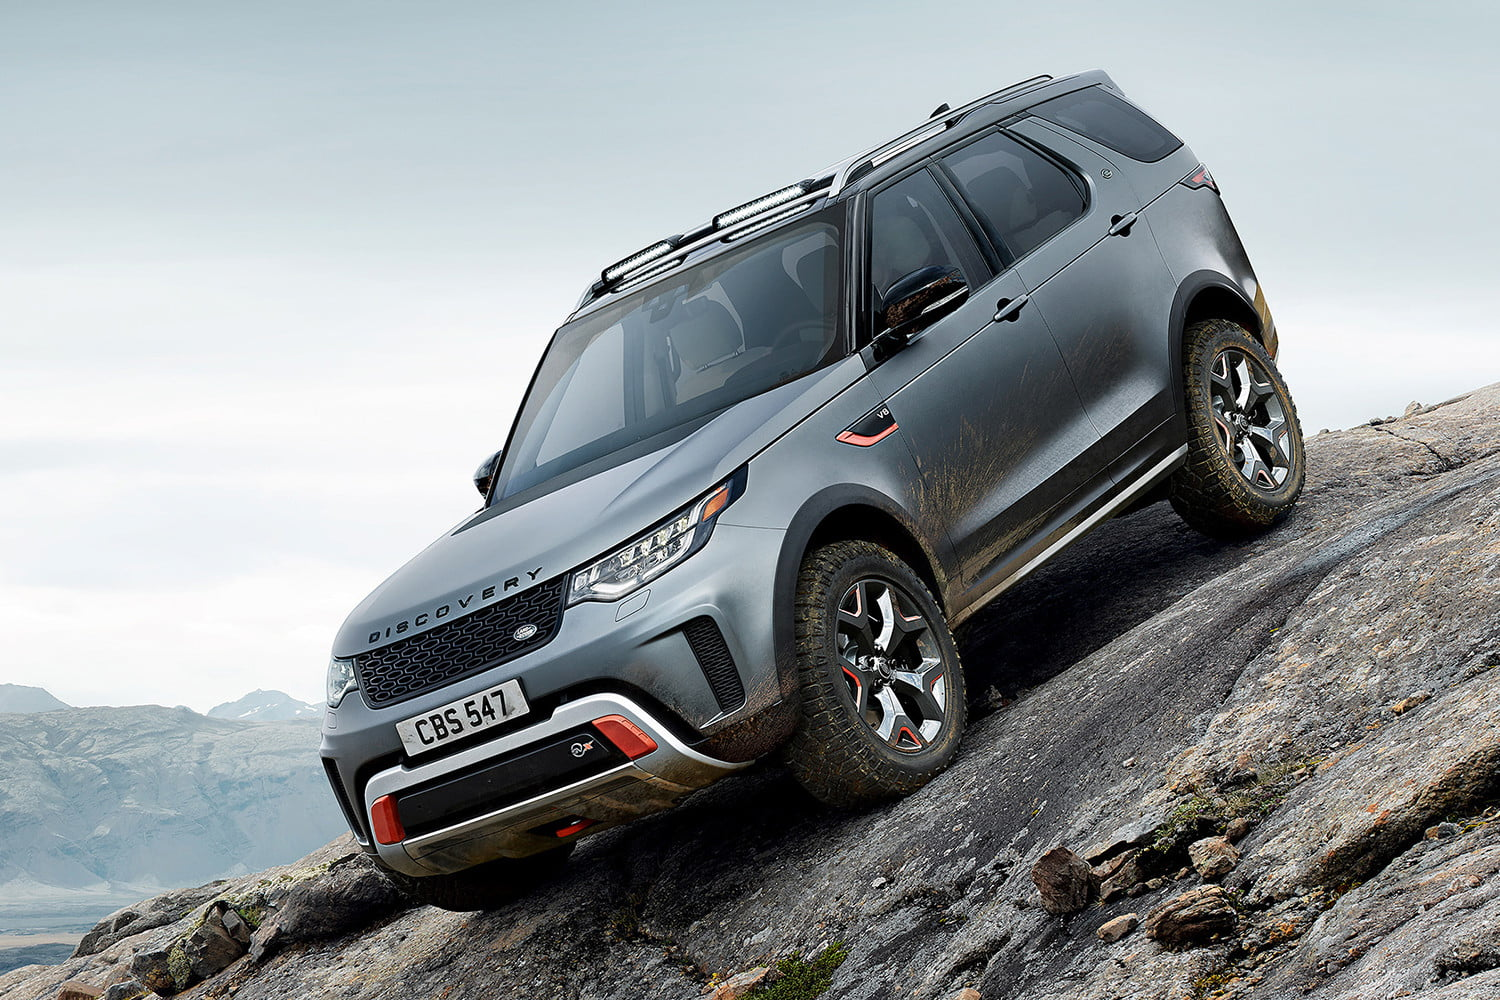 The Latest From Land Rover: Electrification and